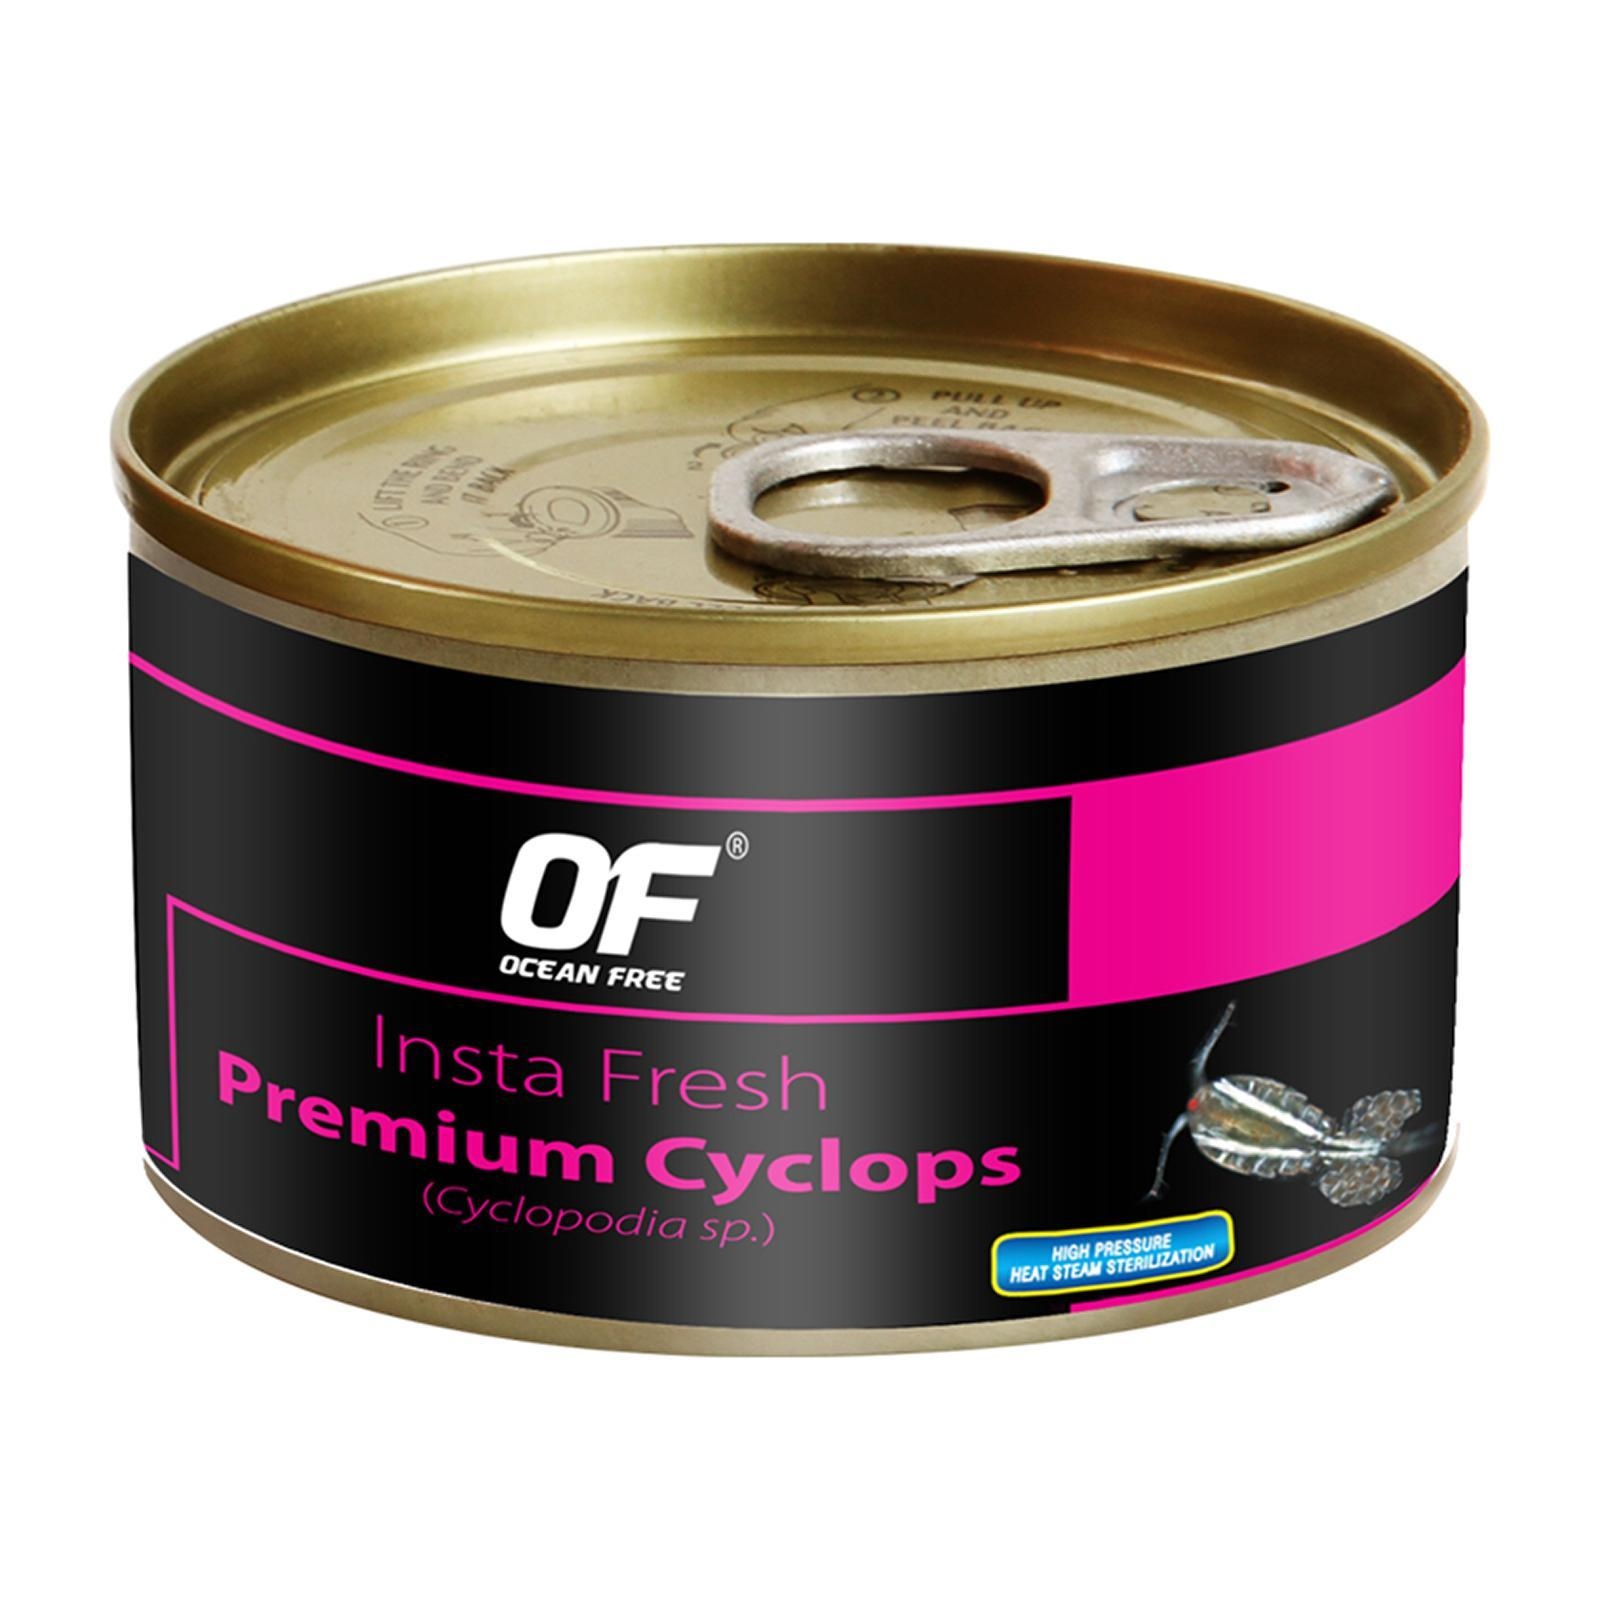 OF Insta Fresh Premium Cyclops 100G